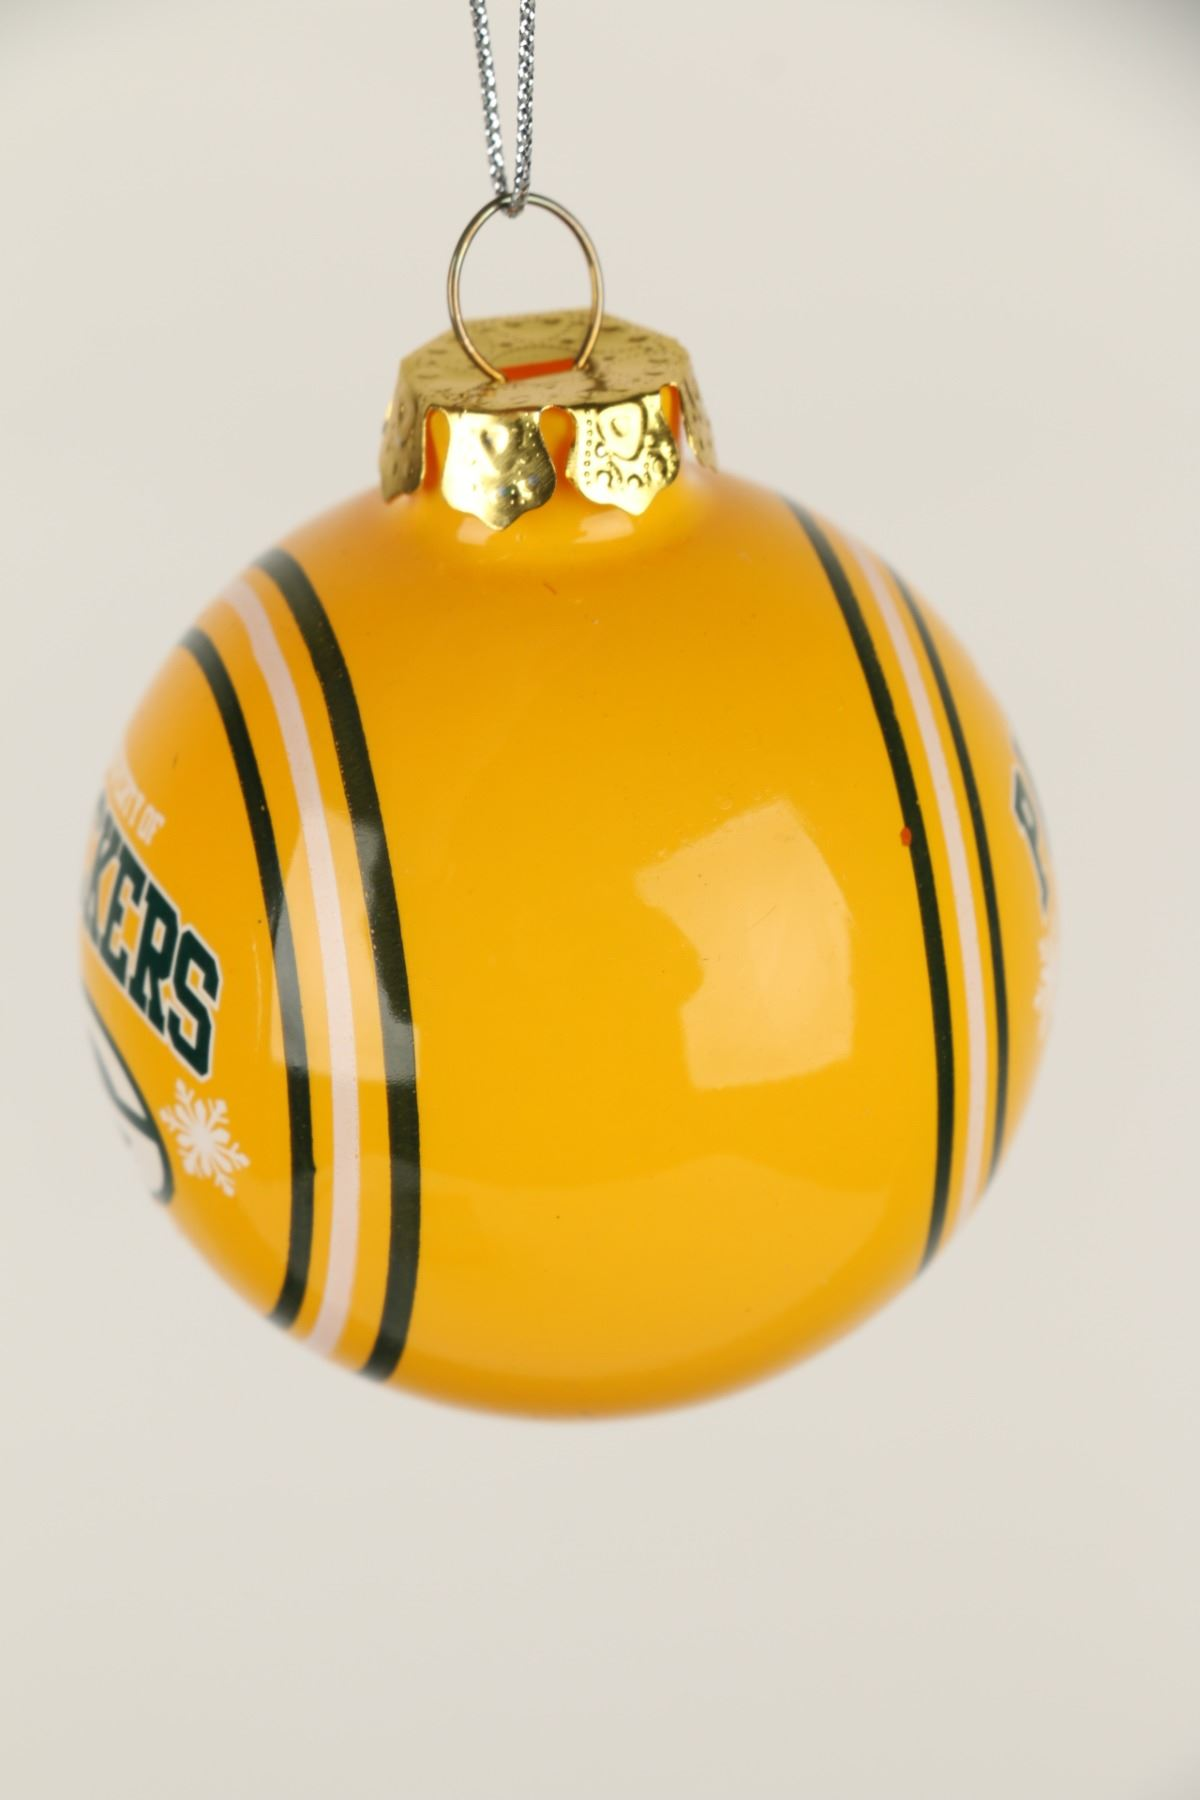 image 5 green bay packers glass christmas ornament - Green Bay Packers Christmas Ornaments